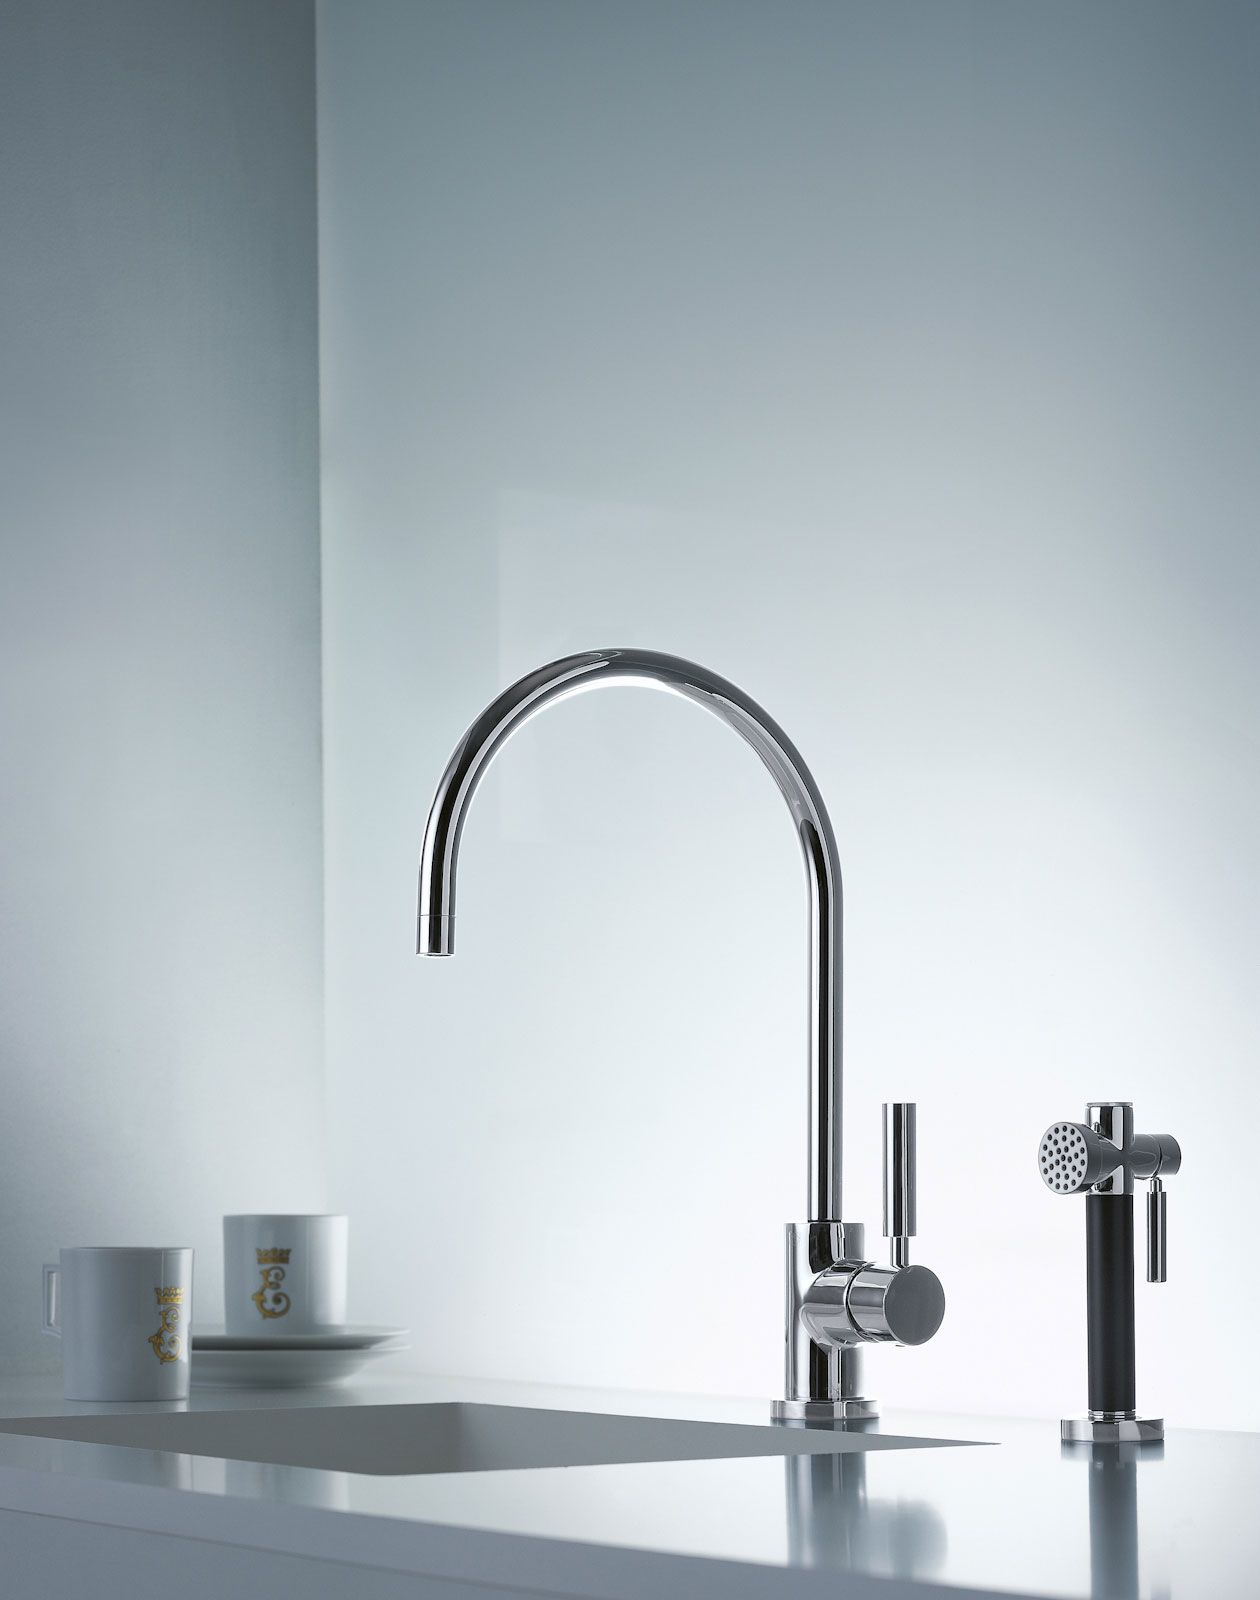 s showroom faucet bath dnb for watertown faucets availability htm call boston dornbracht monique